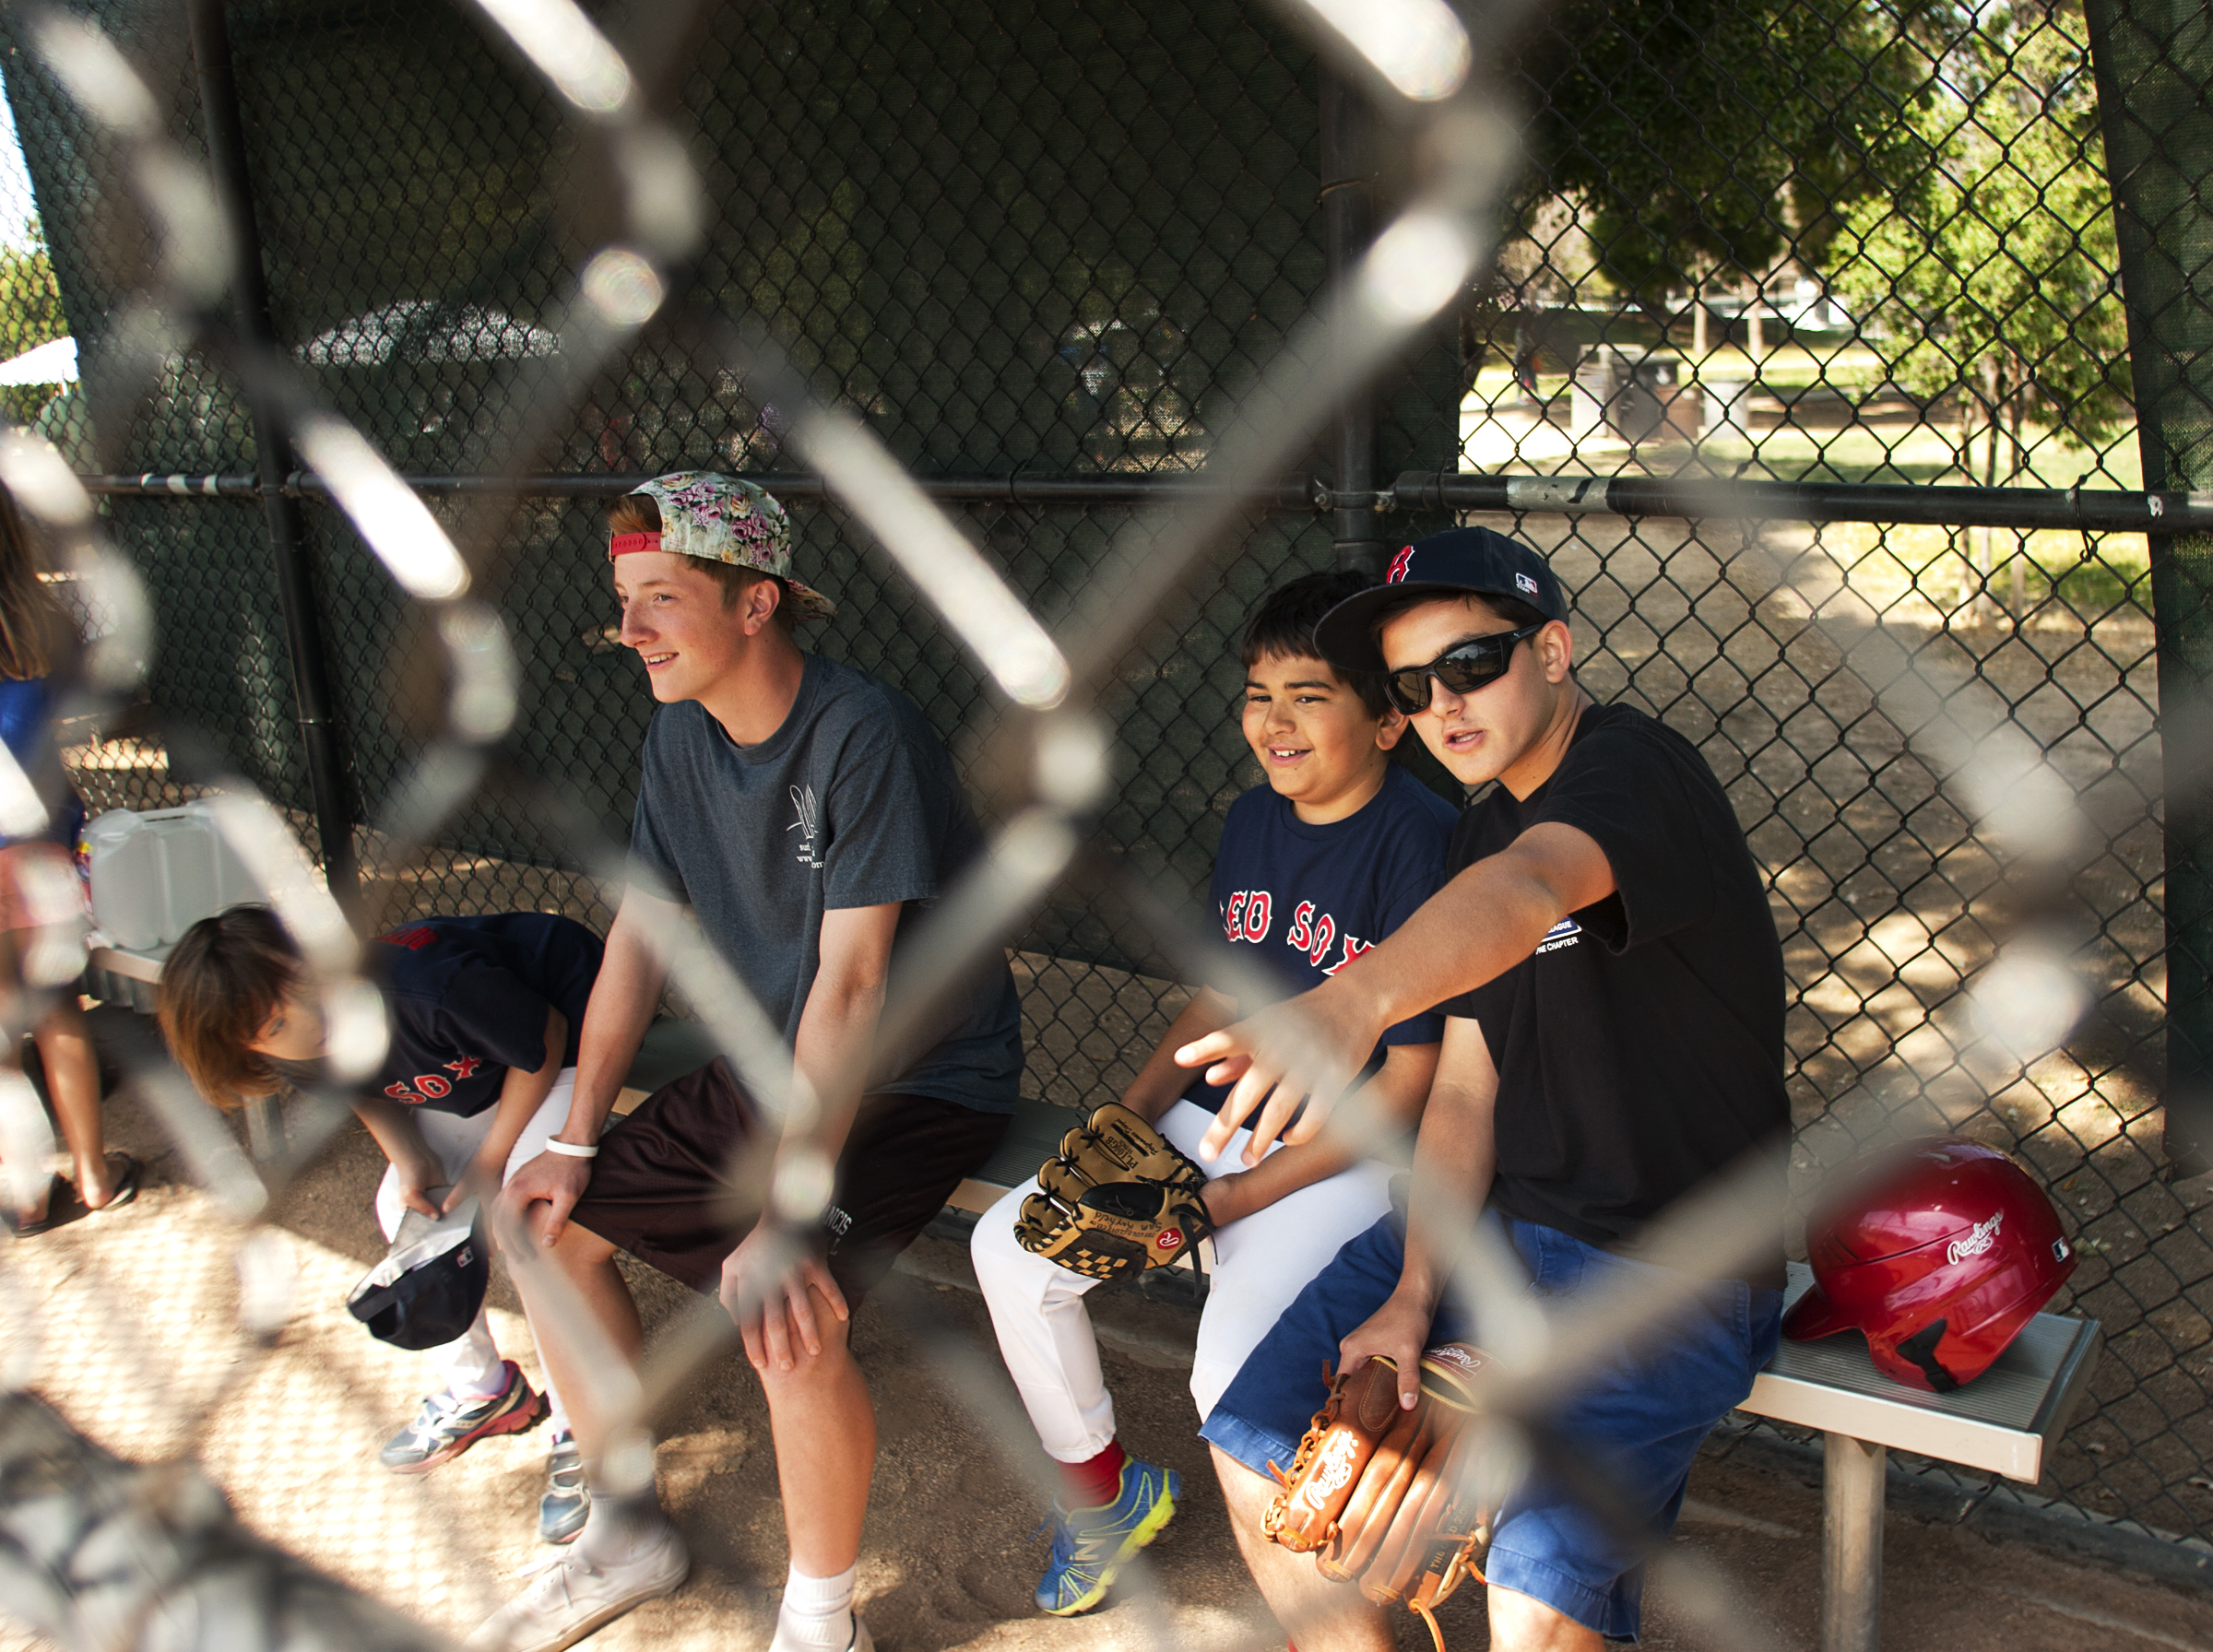 Morgan Serughetti, right, jokes with his buddy Sam, center right, about which of the two is better at baseball during the Little League Challenger game in Menlo Park, California, on April 19, 2015.